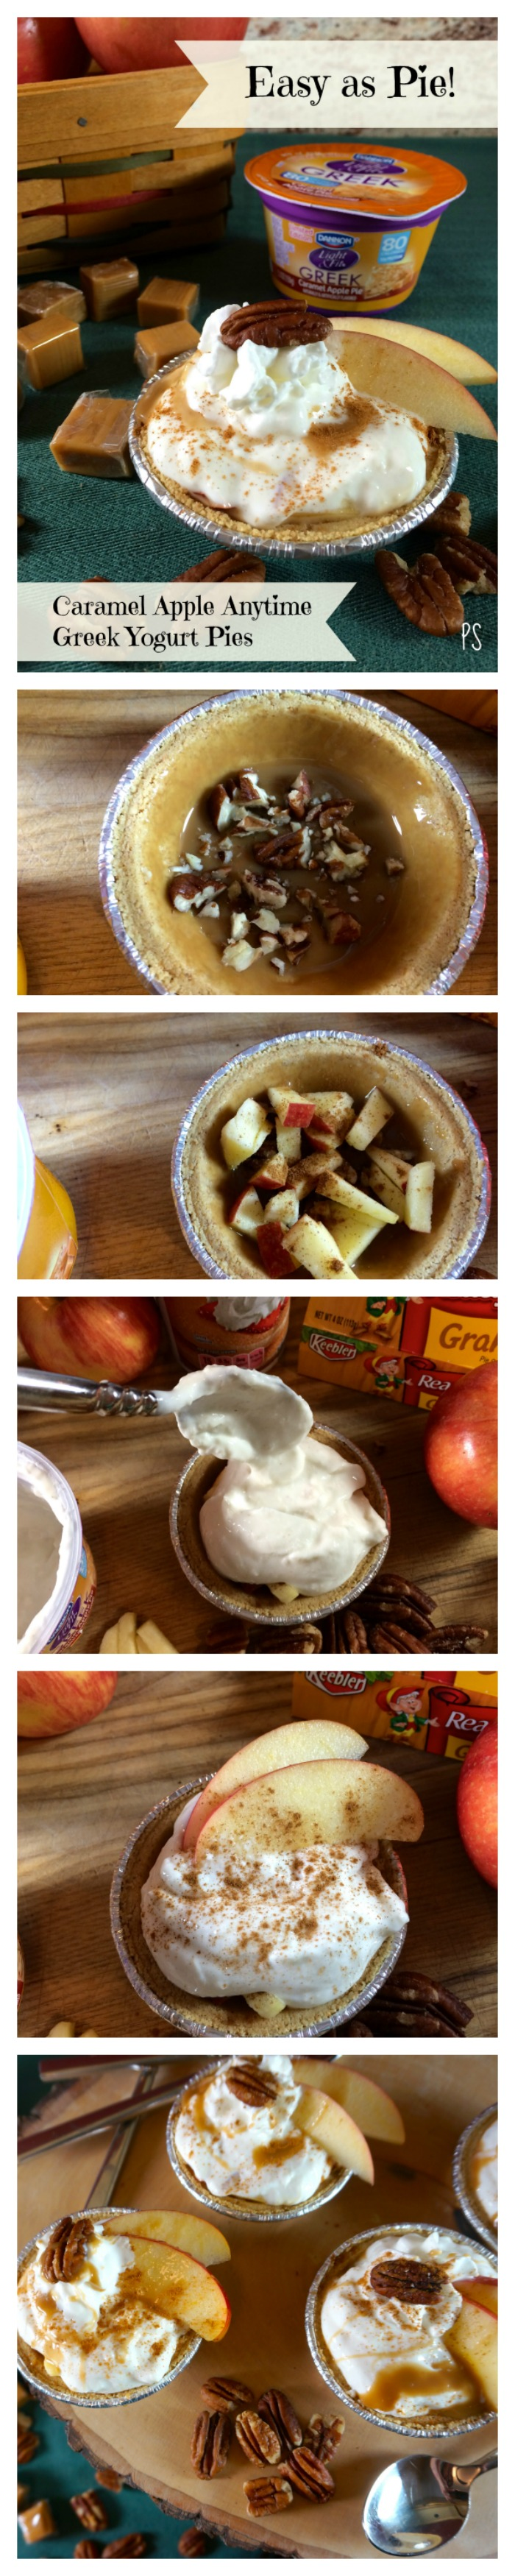 Caramel Apple Anytime Greek Yogurt Pies #EffortlessPies - So fast, easy, delicious, and a healthier choice for dessert!